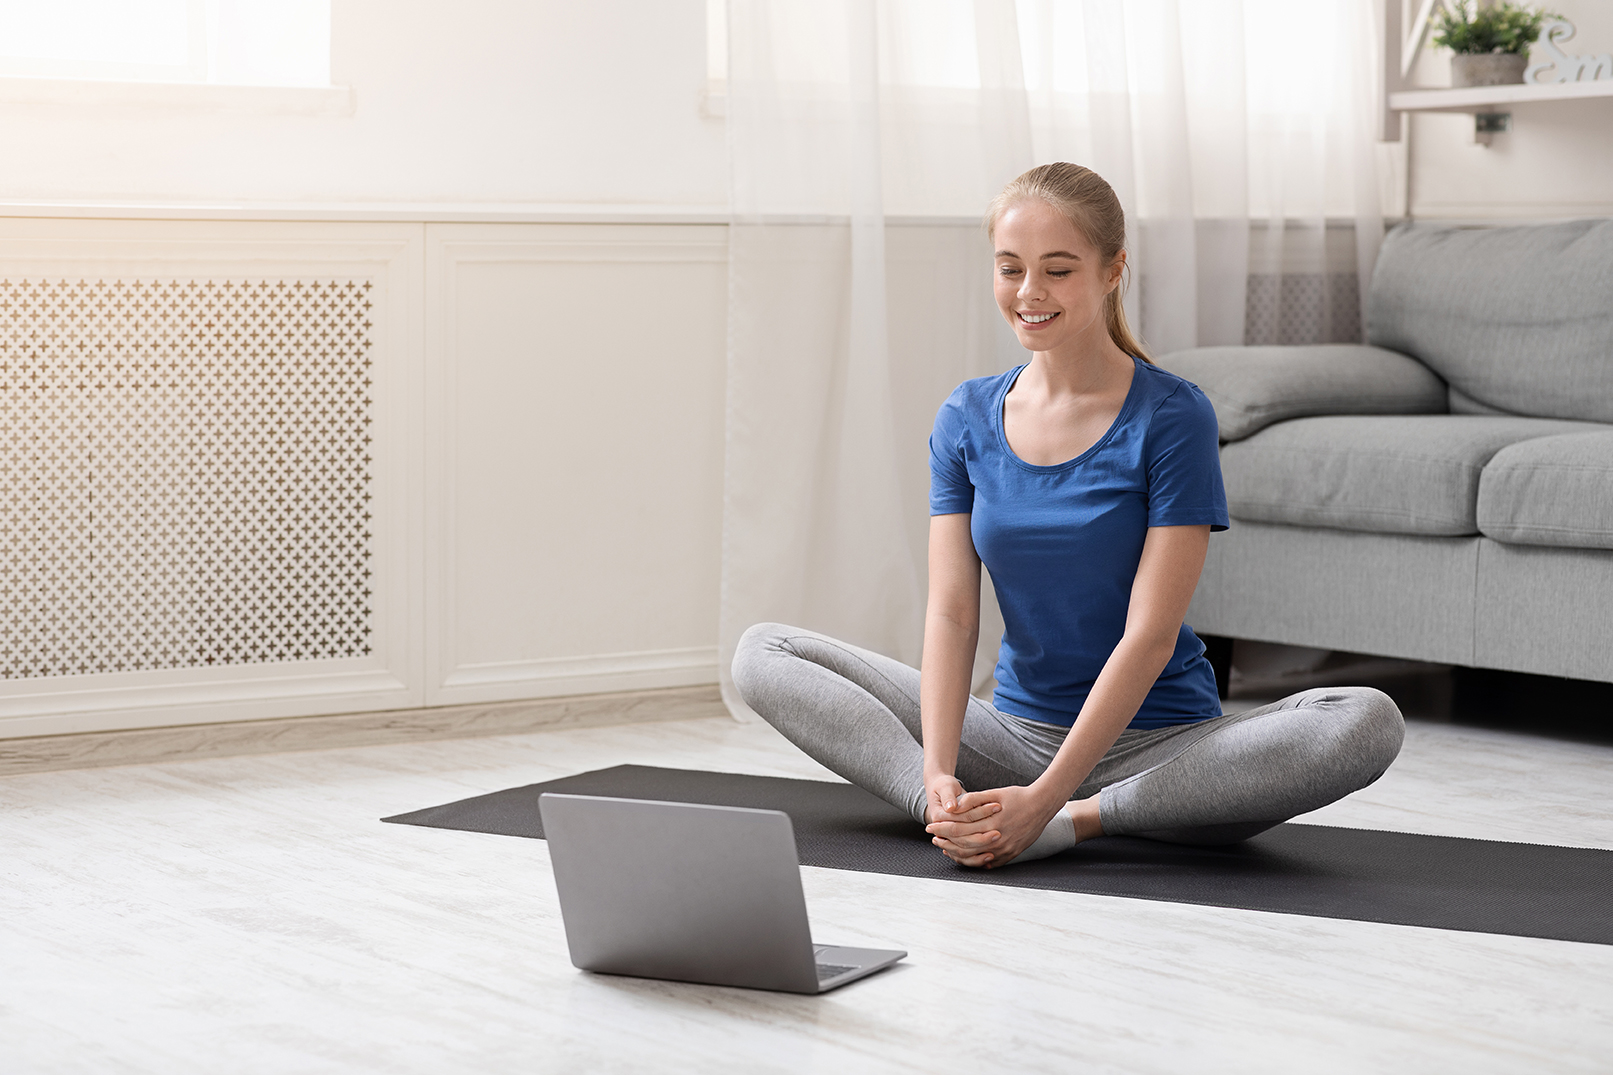 Woman Using Telehealth Services to Improve Physical Health